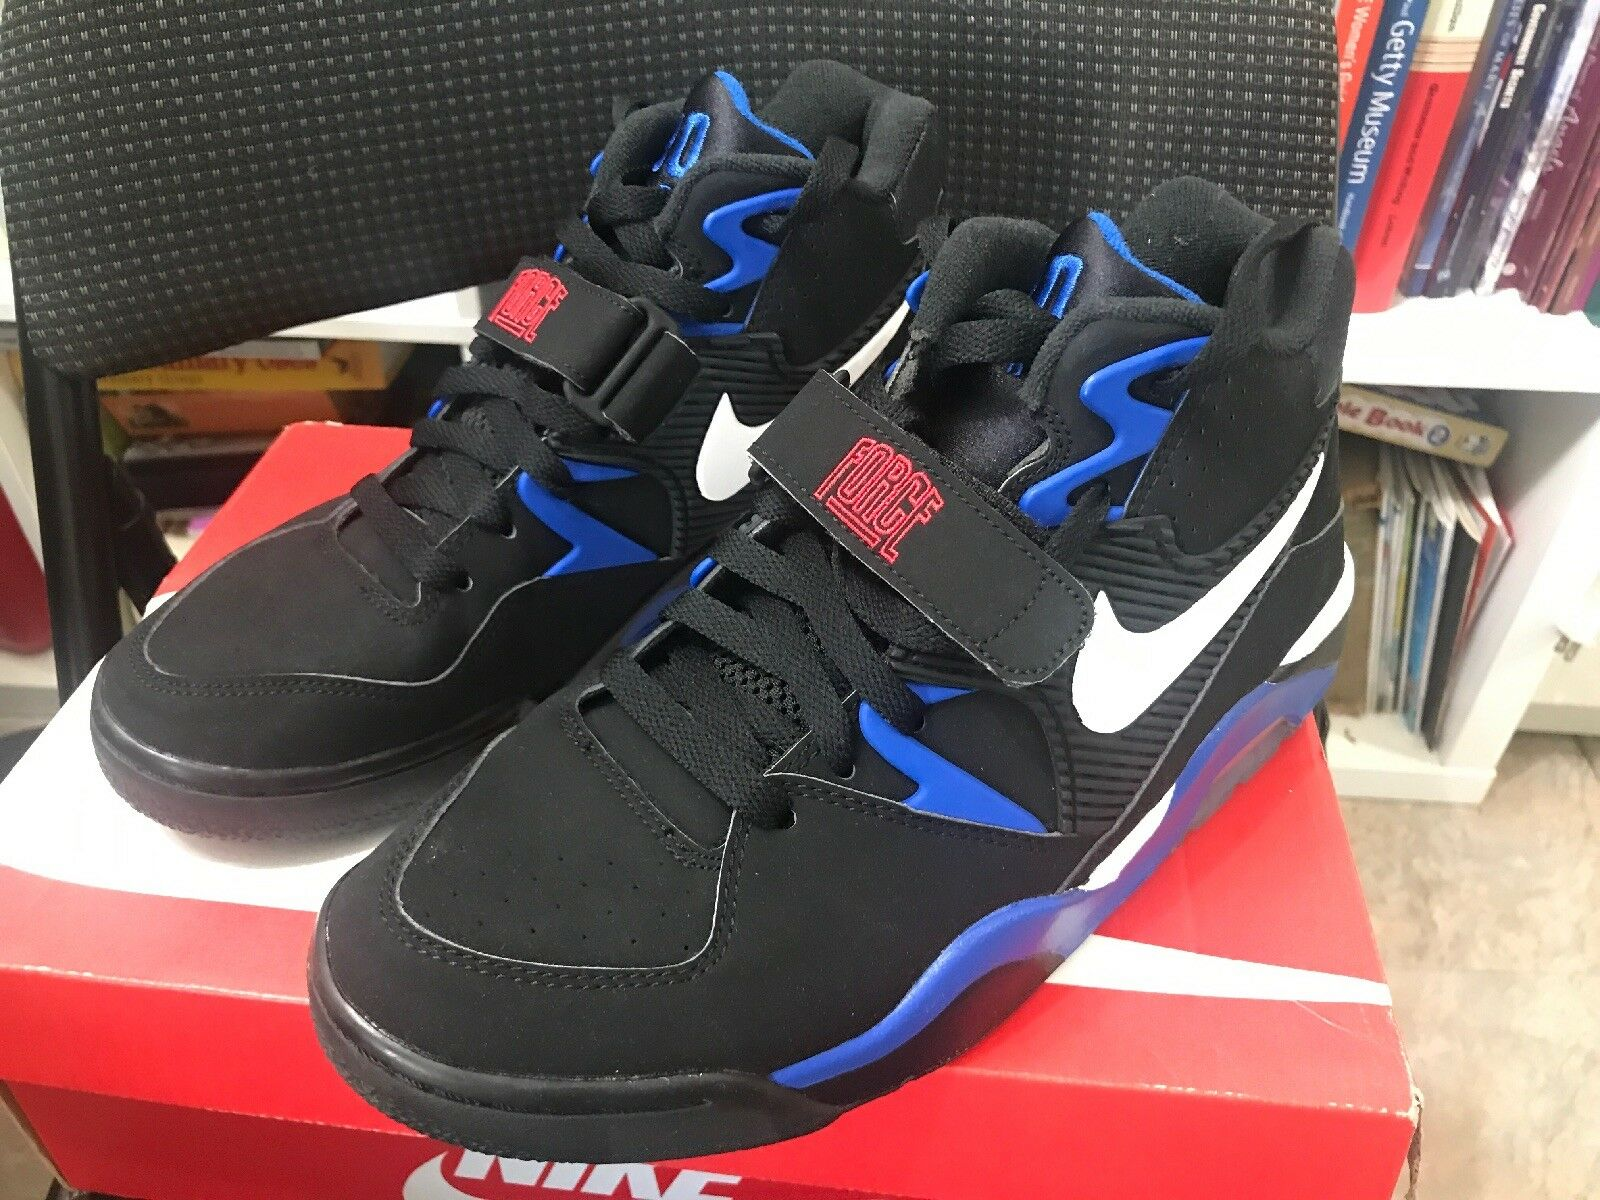 best service 5de12 07f43 New Nike Air Force 180, 180, 180, Black White Red bluee Barkley OG